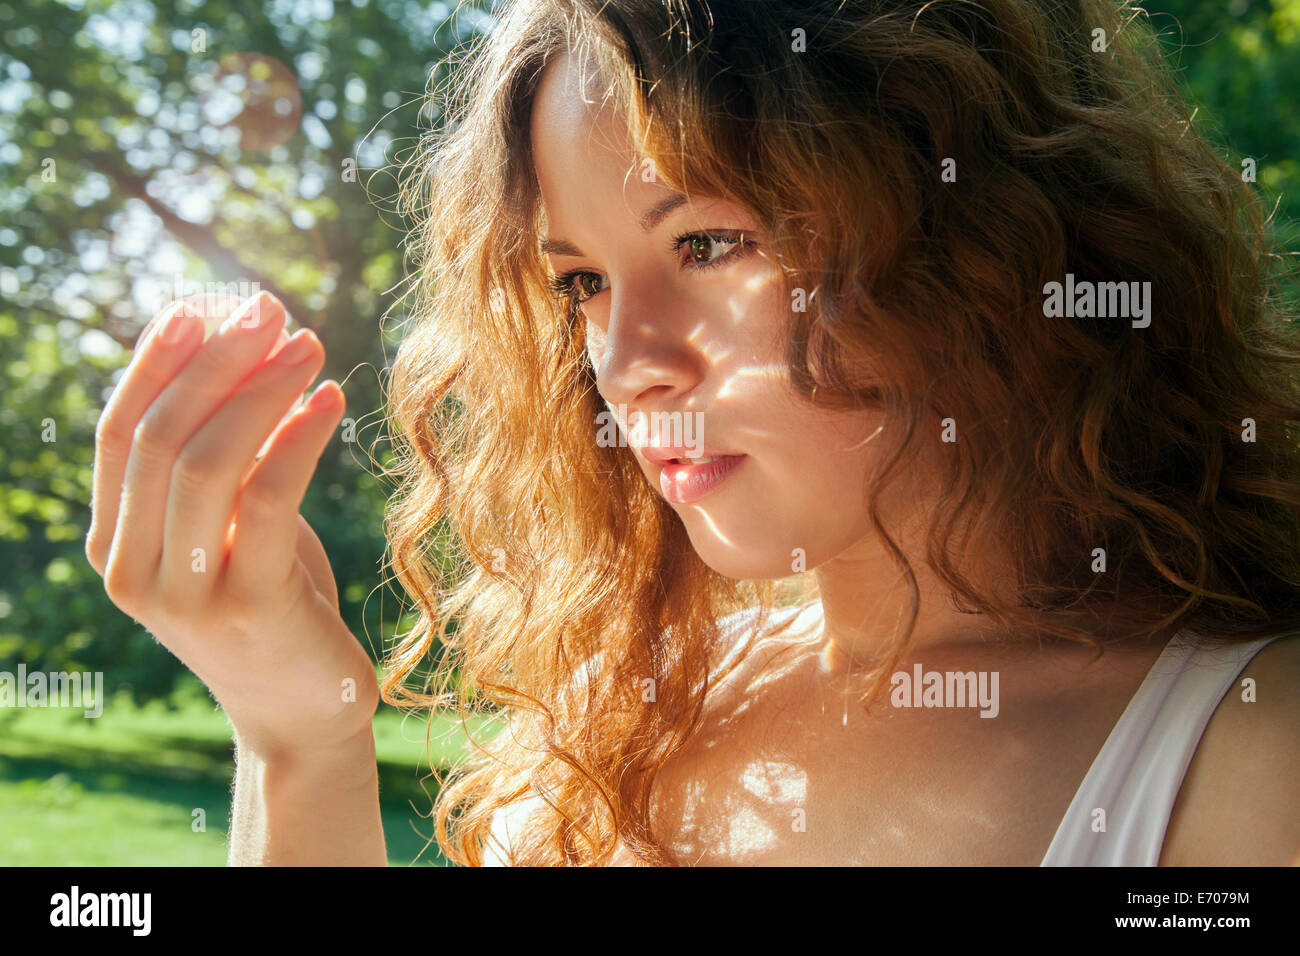 Portrait of young woman gazing at something glowing in hand - Stock Image